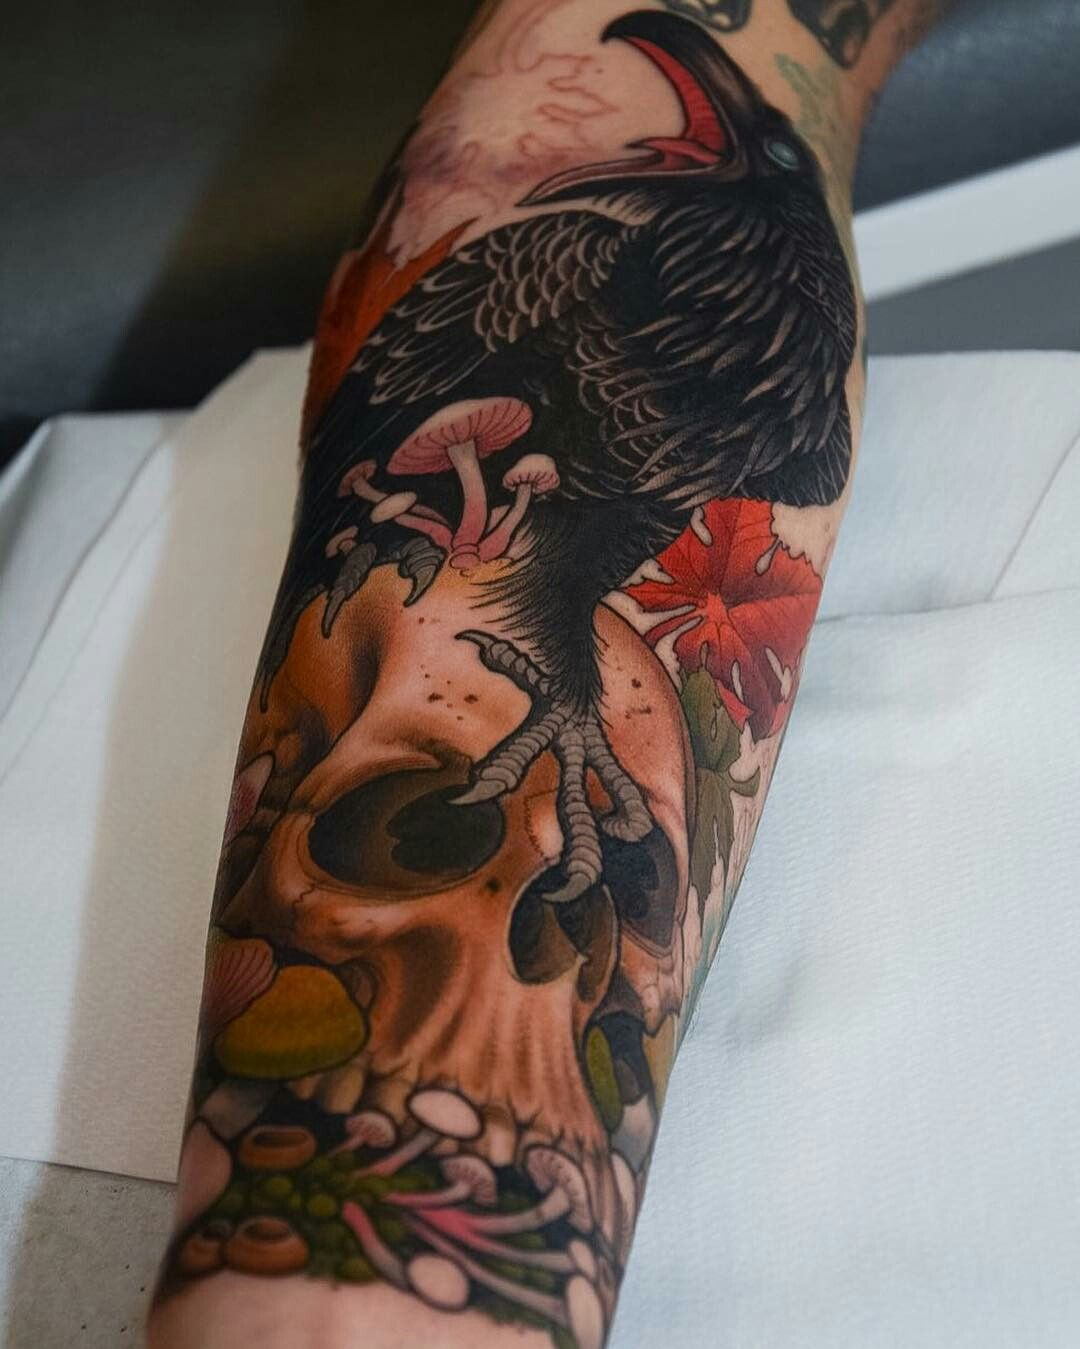 Tattoo done by Peter Lagergren raven cuervo